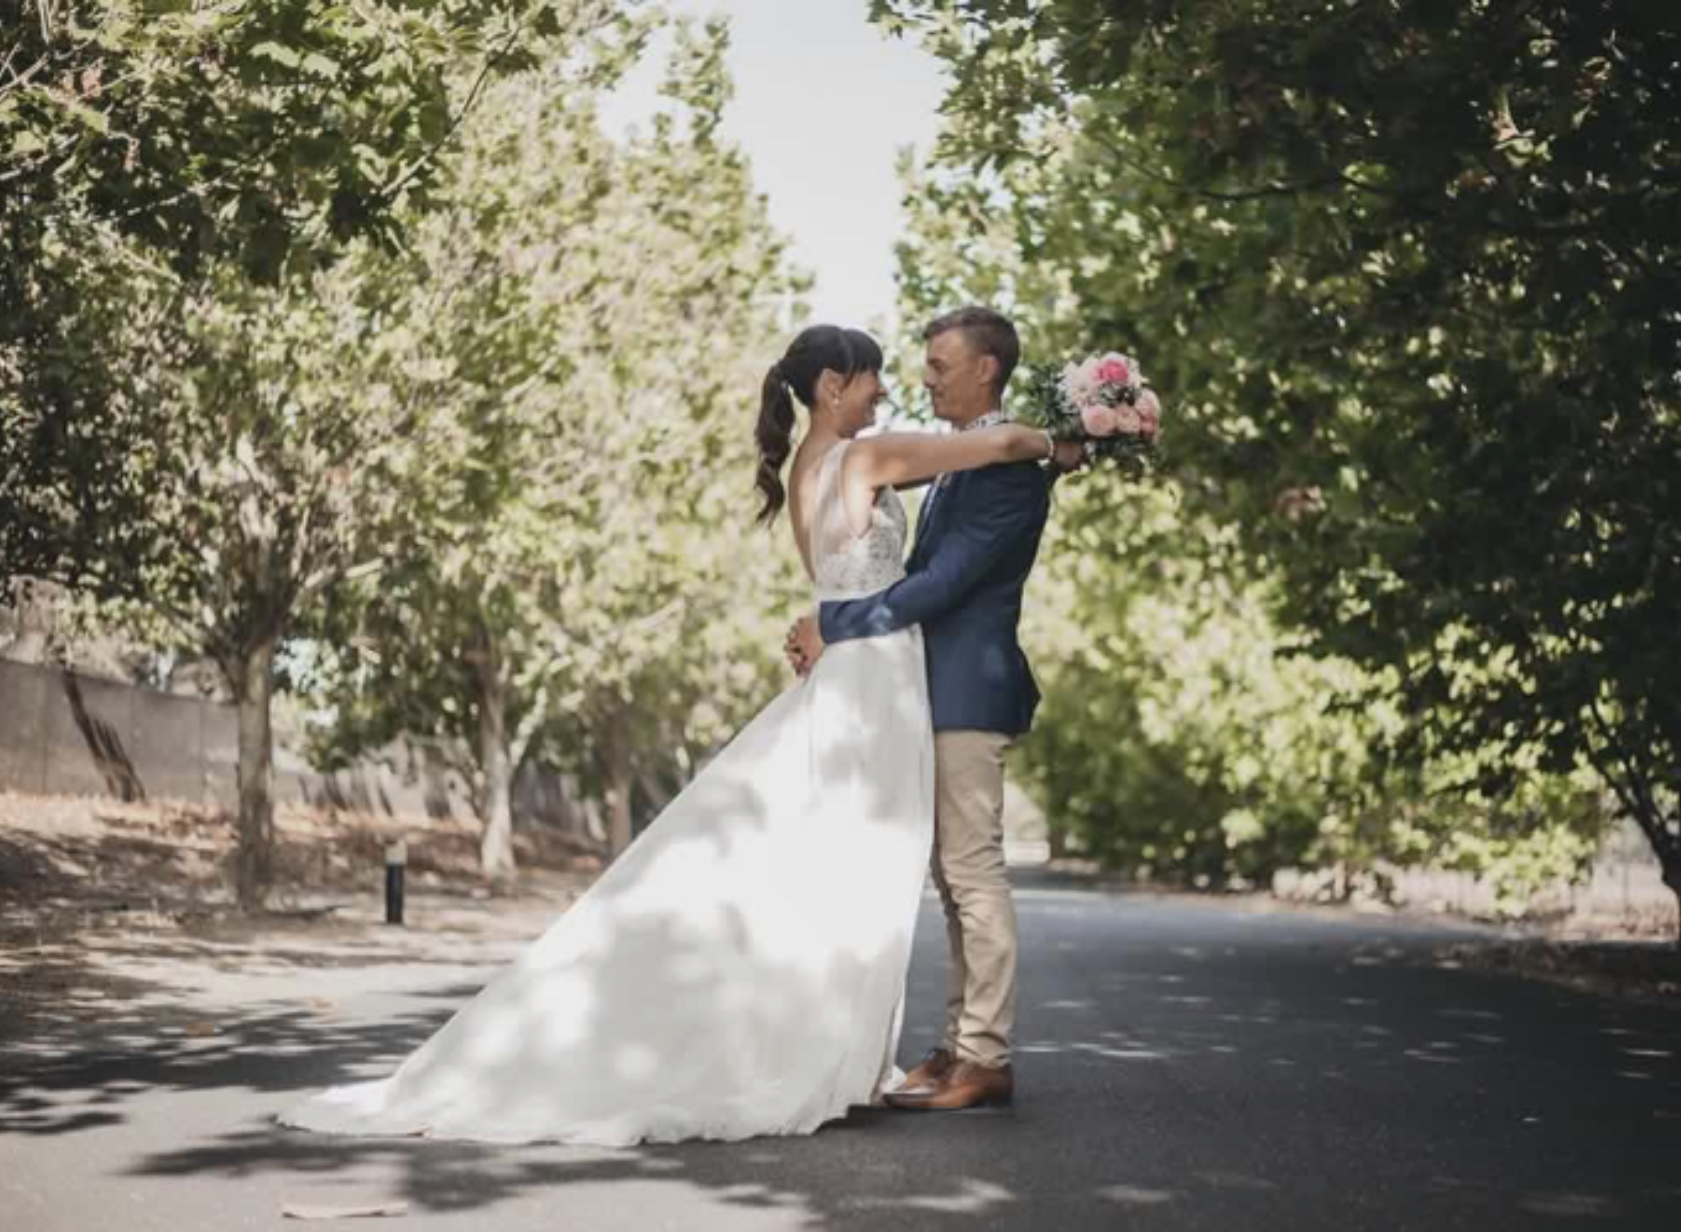 Blossom_And_The_Bee_Wedding_Gallery_2